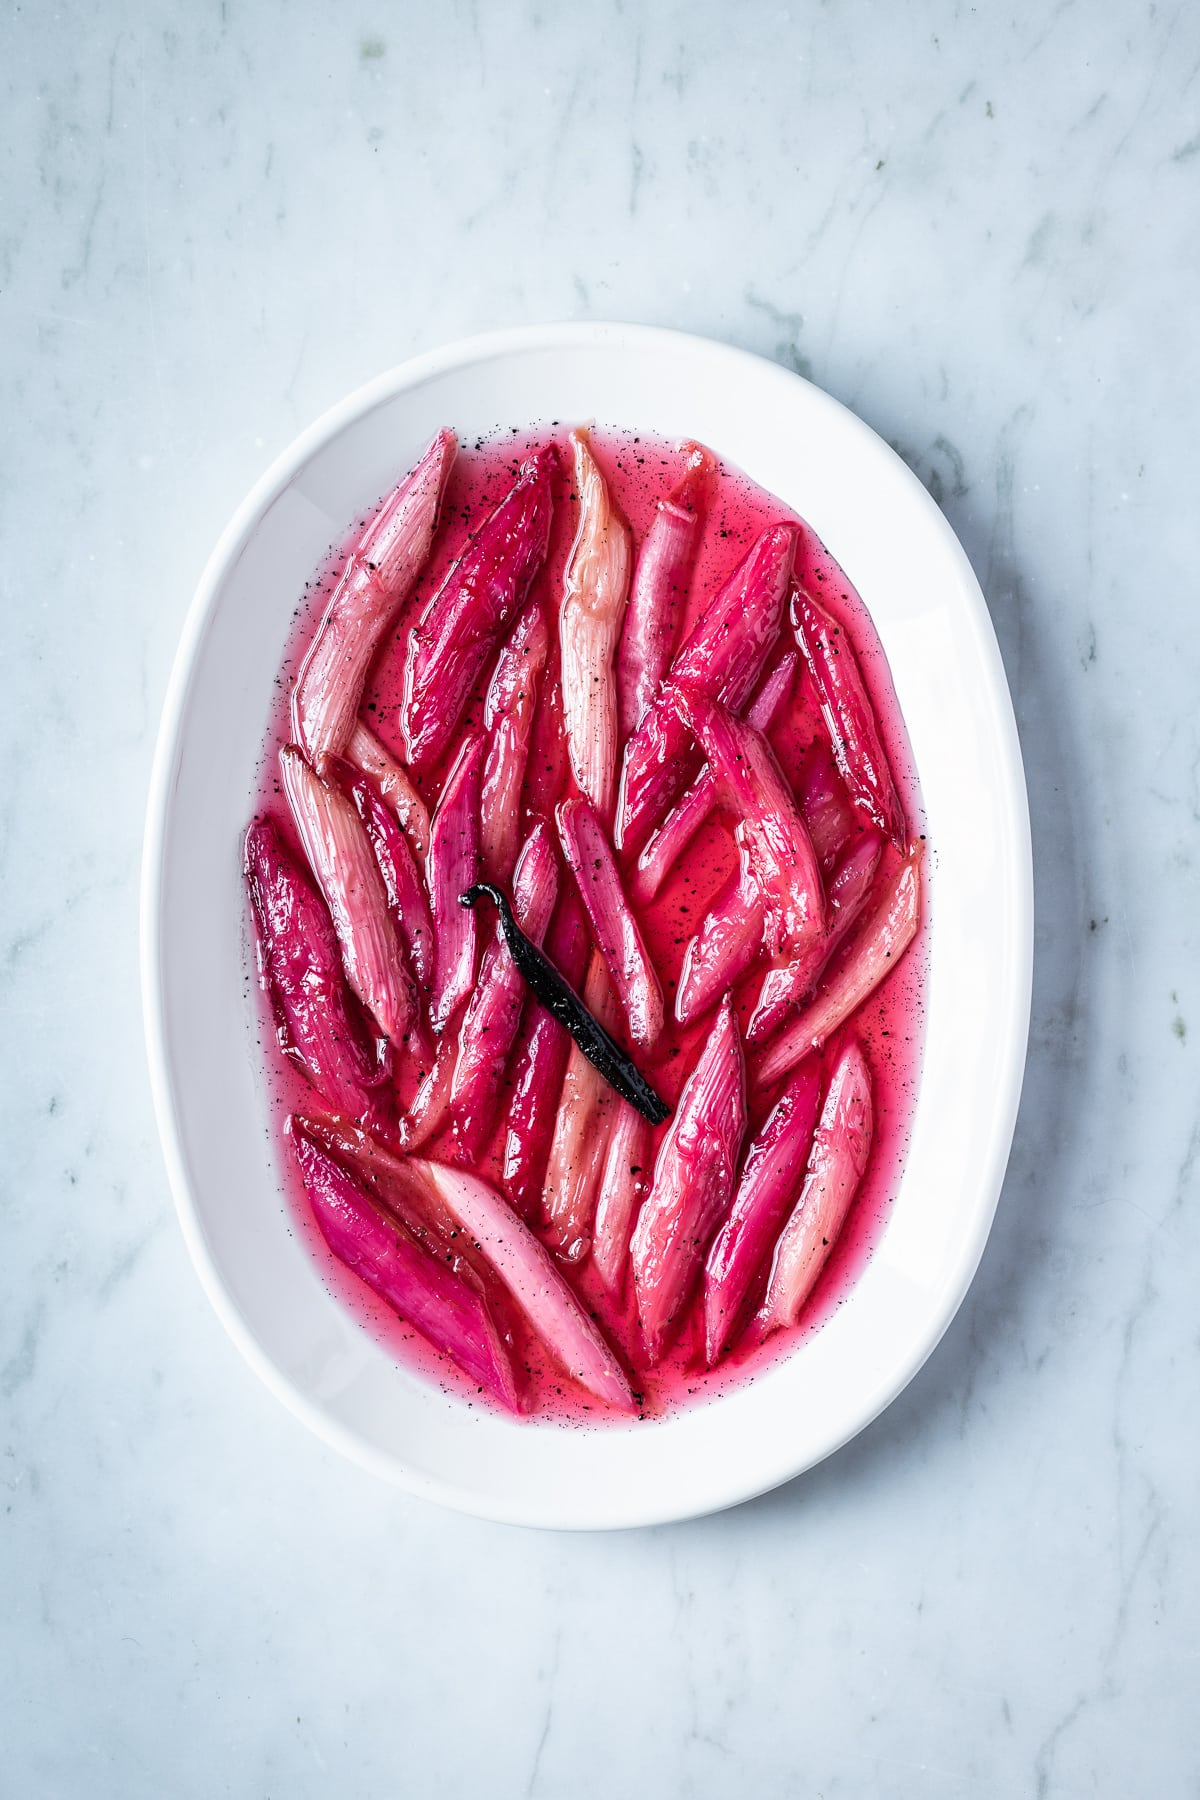 Bright pink poached rhubarb on a white oval platter on a grey marble surface